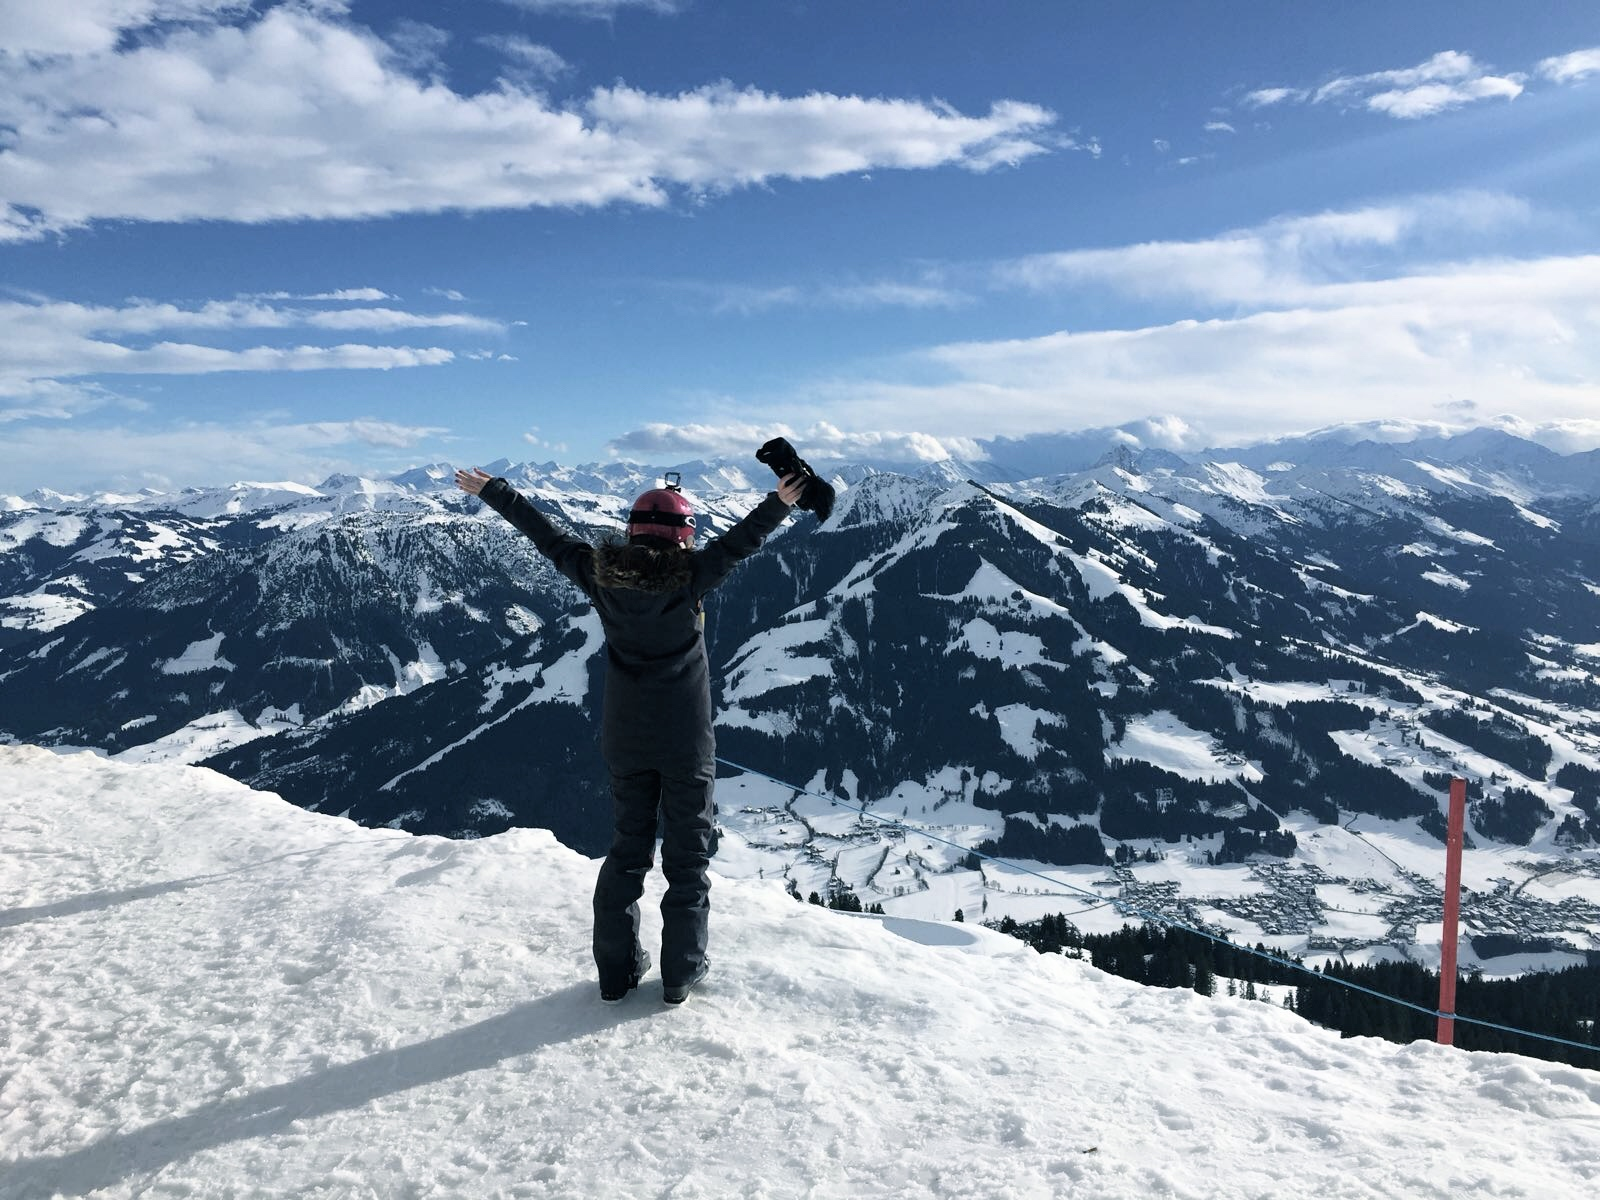 Standing at the top of the mountain in Austria